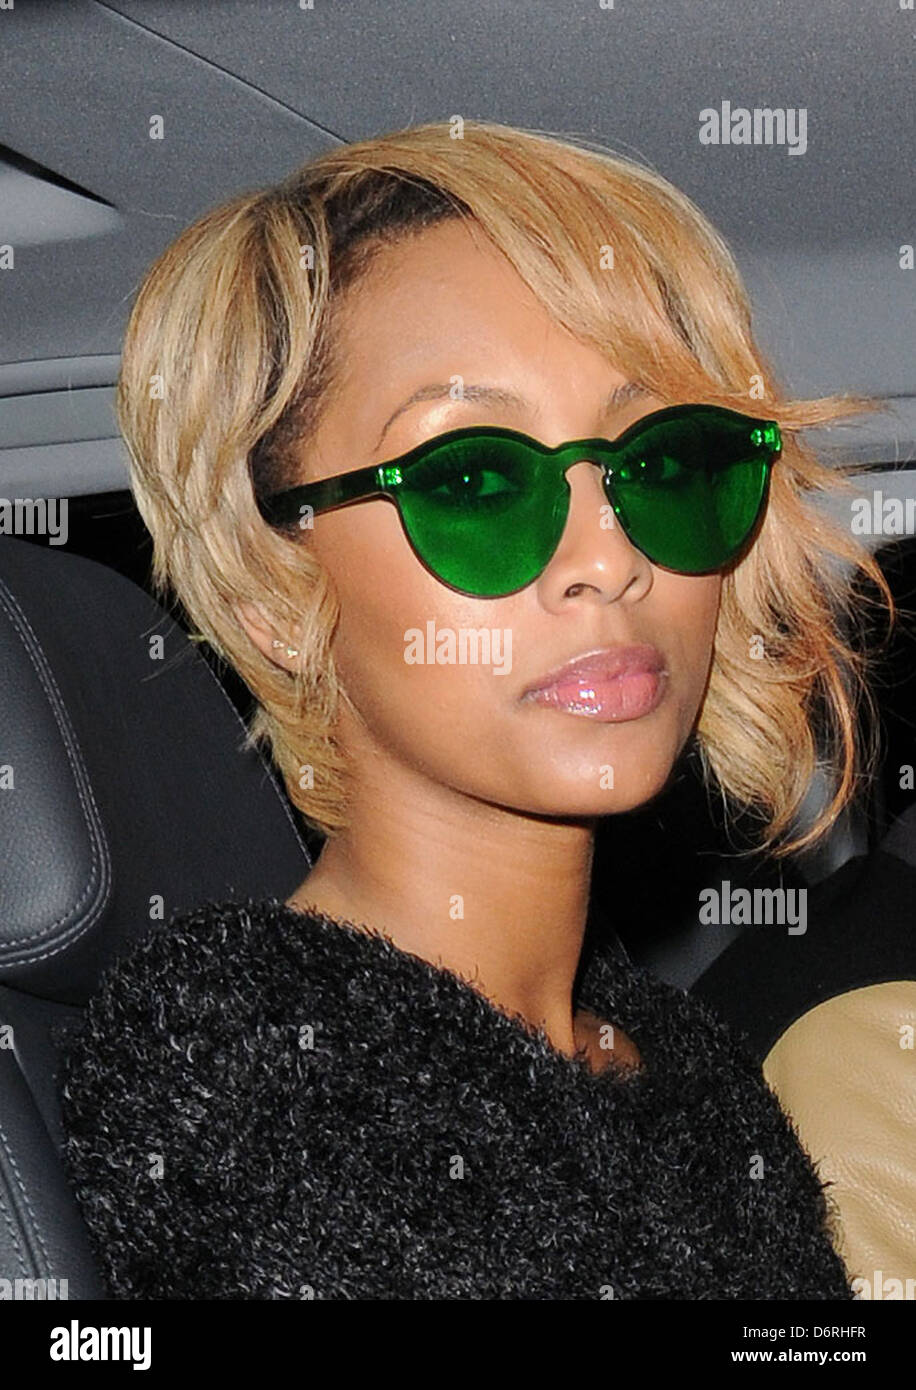 3ada8e58e1 Keri Hilson leaving May Fair Hotel wearing green tinted sunglasses. London